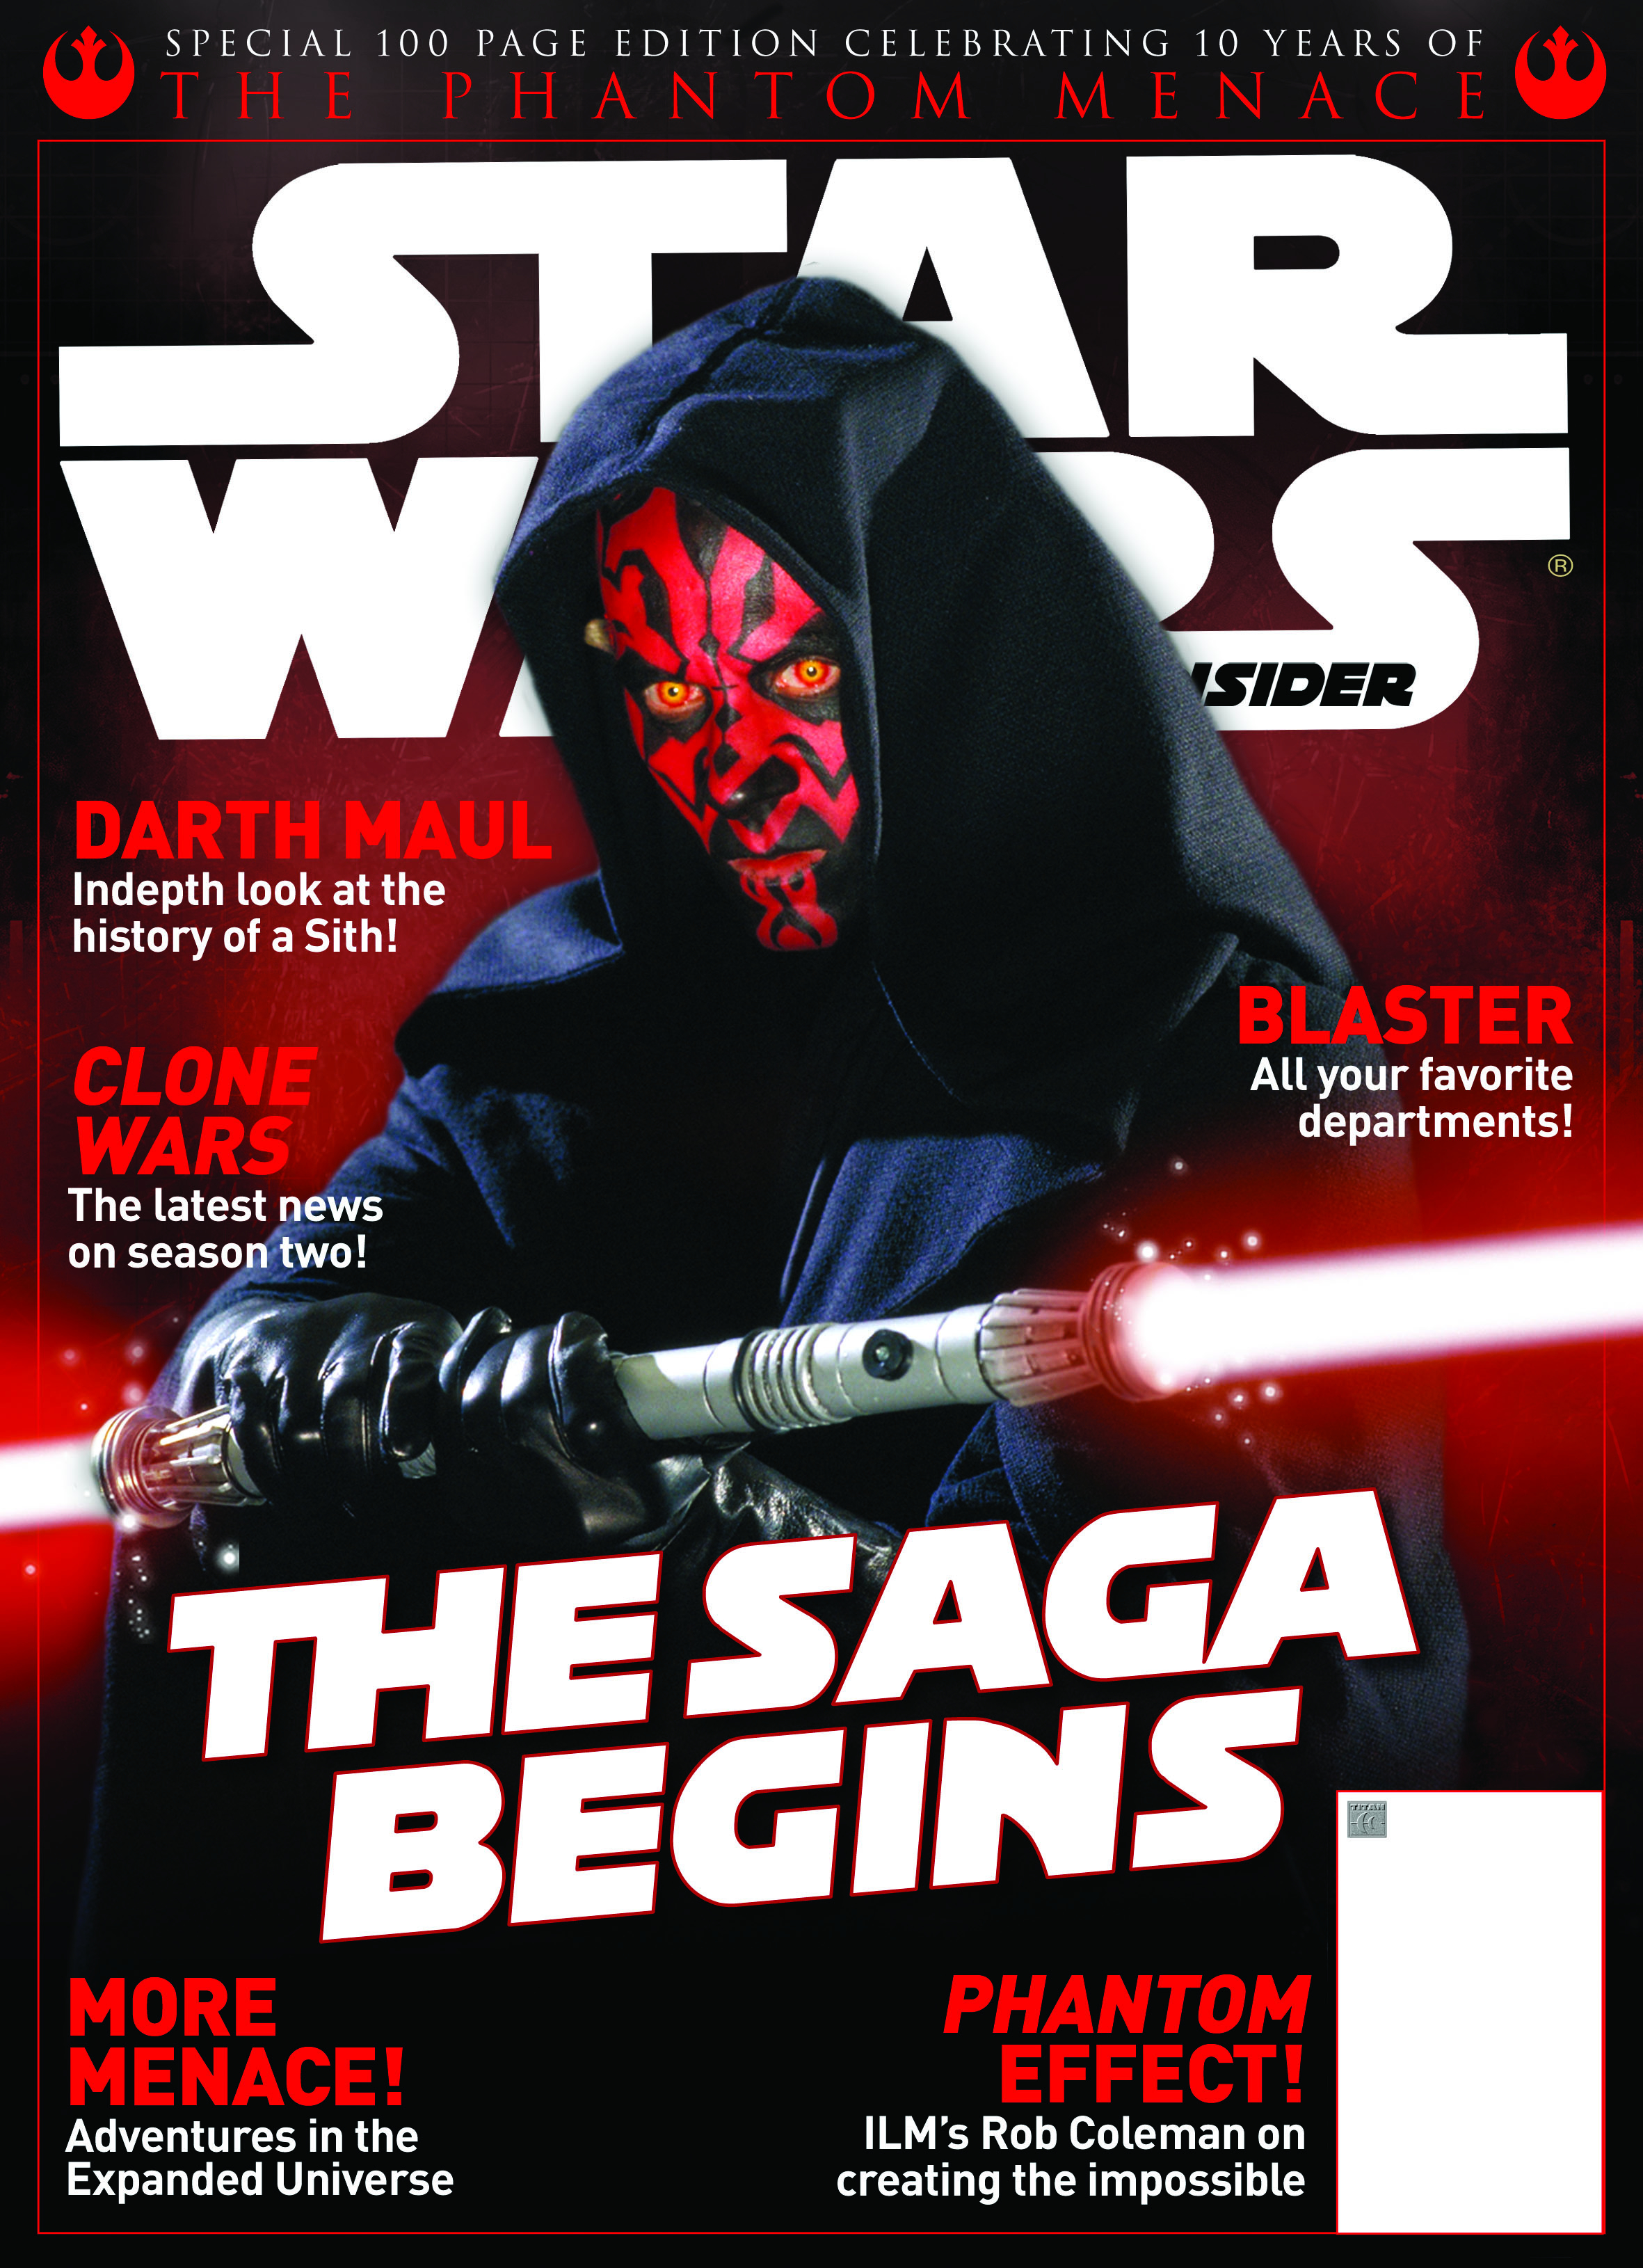 STAR WARS INSIDER #109 SPECIAL NEWSSTAND ED